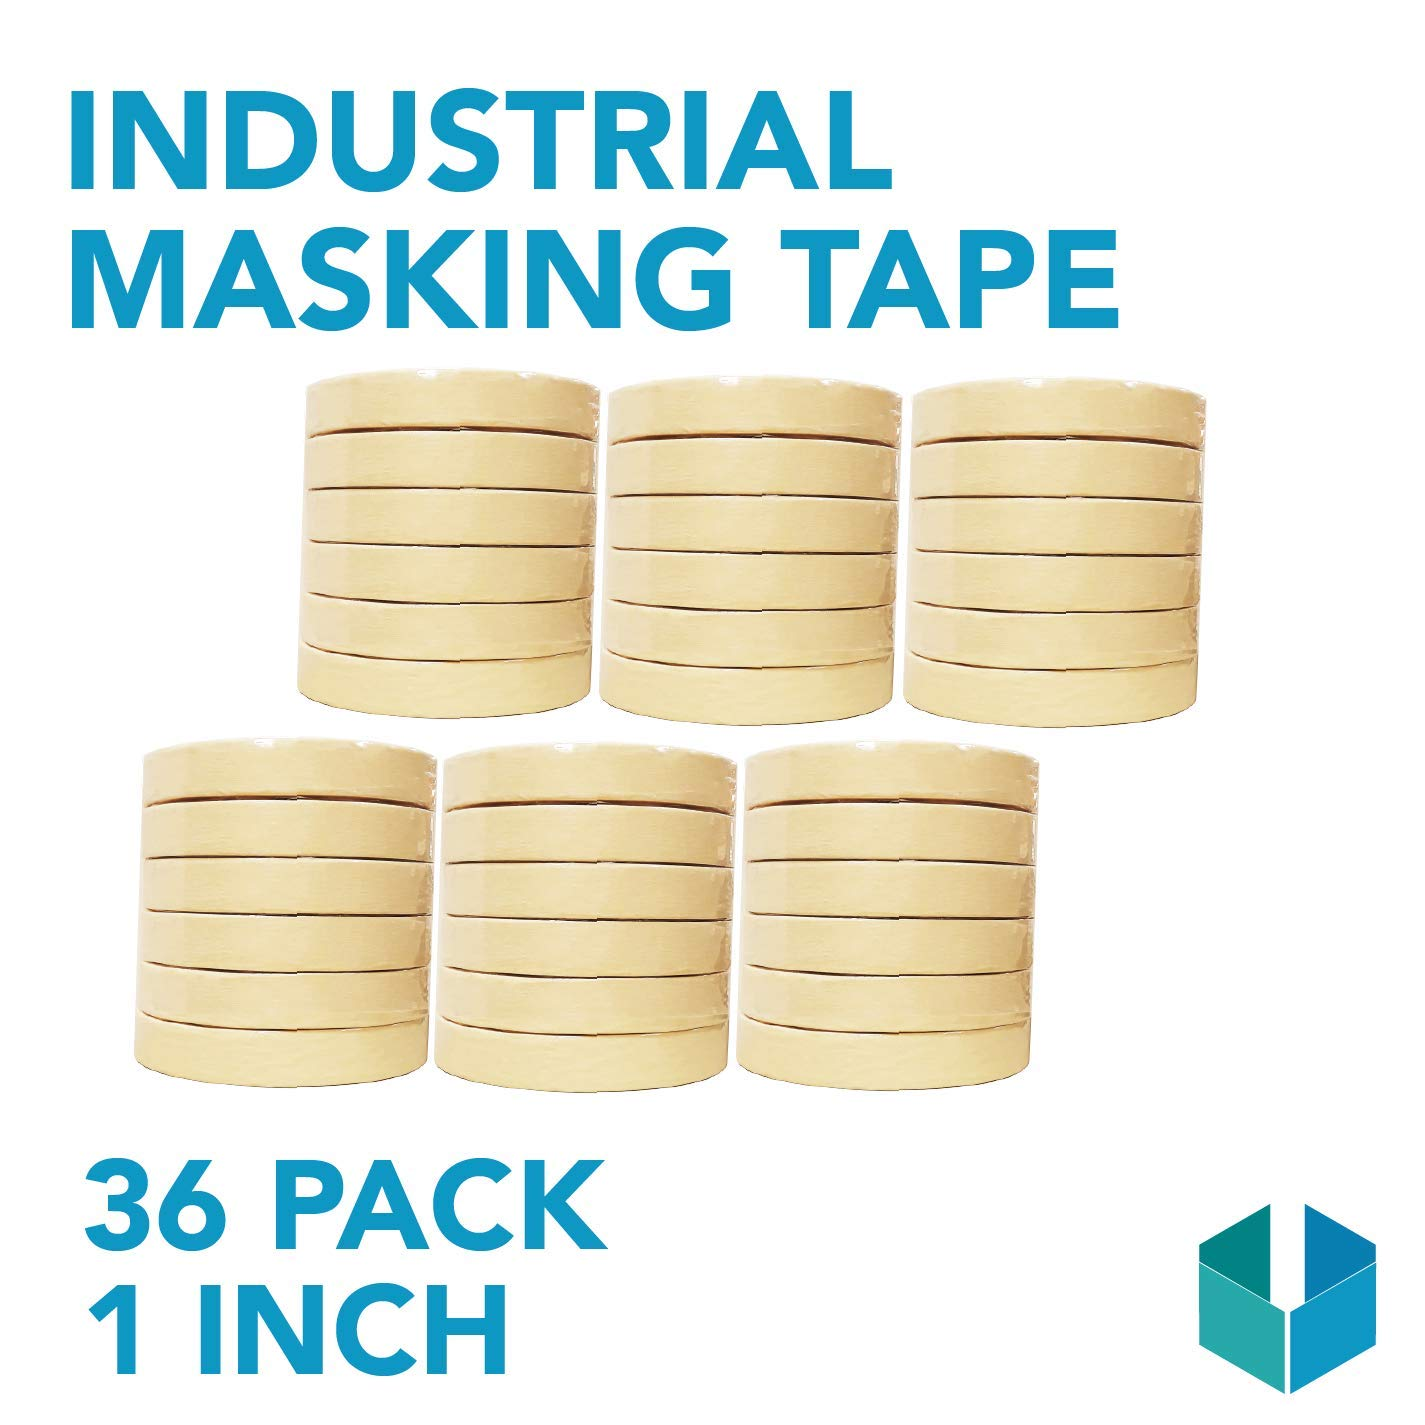 Industrial Masking Tape for General Purpose/Painting - CASE of 36-1'' x 60 Yards per roll (24MM x 55M)